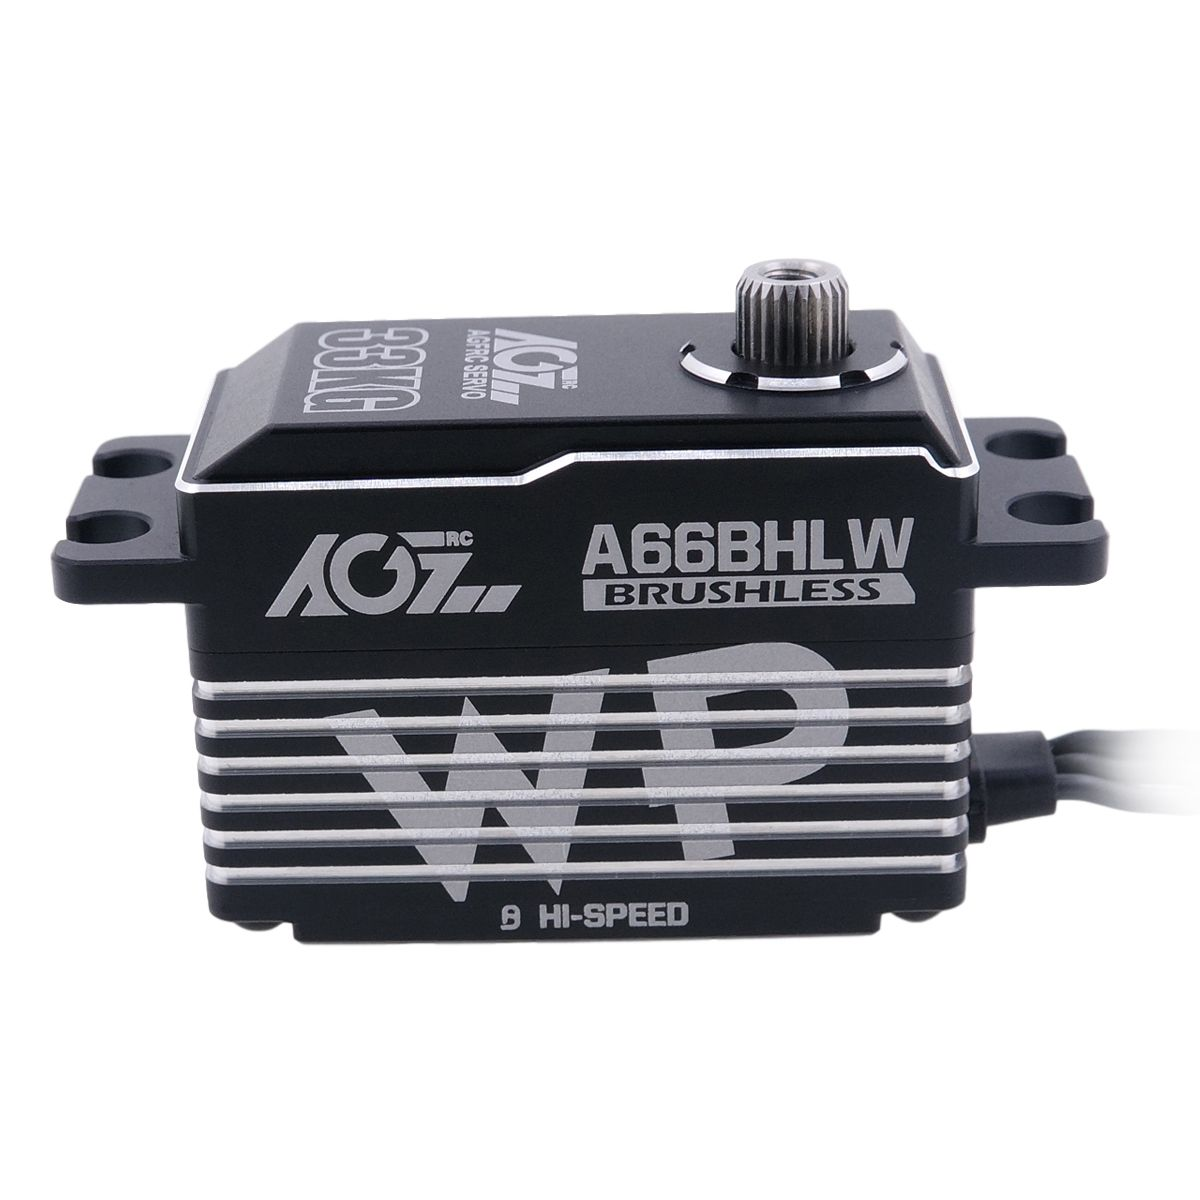 AGFRC A66BHLW 33KG Upgrade Steel Gears Heat Sink Case 0.068Sec High Speed Low Profile Brushless Waterproof Servo For 1/8 RC Drift Touring Car Boat Airplane